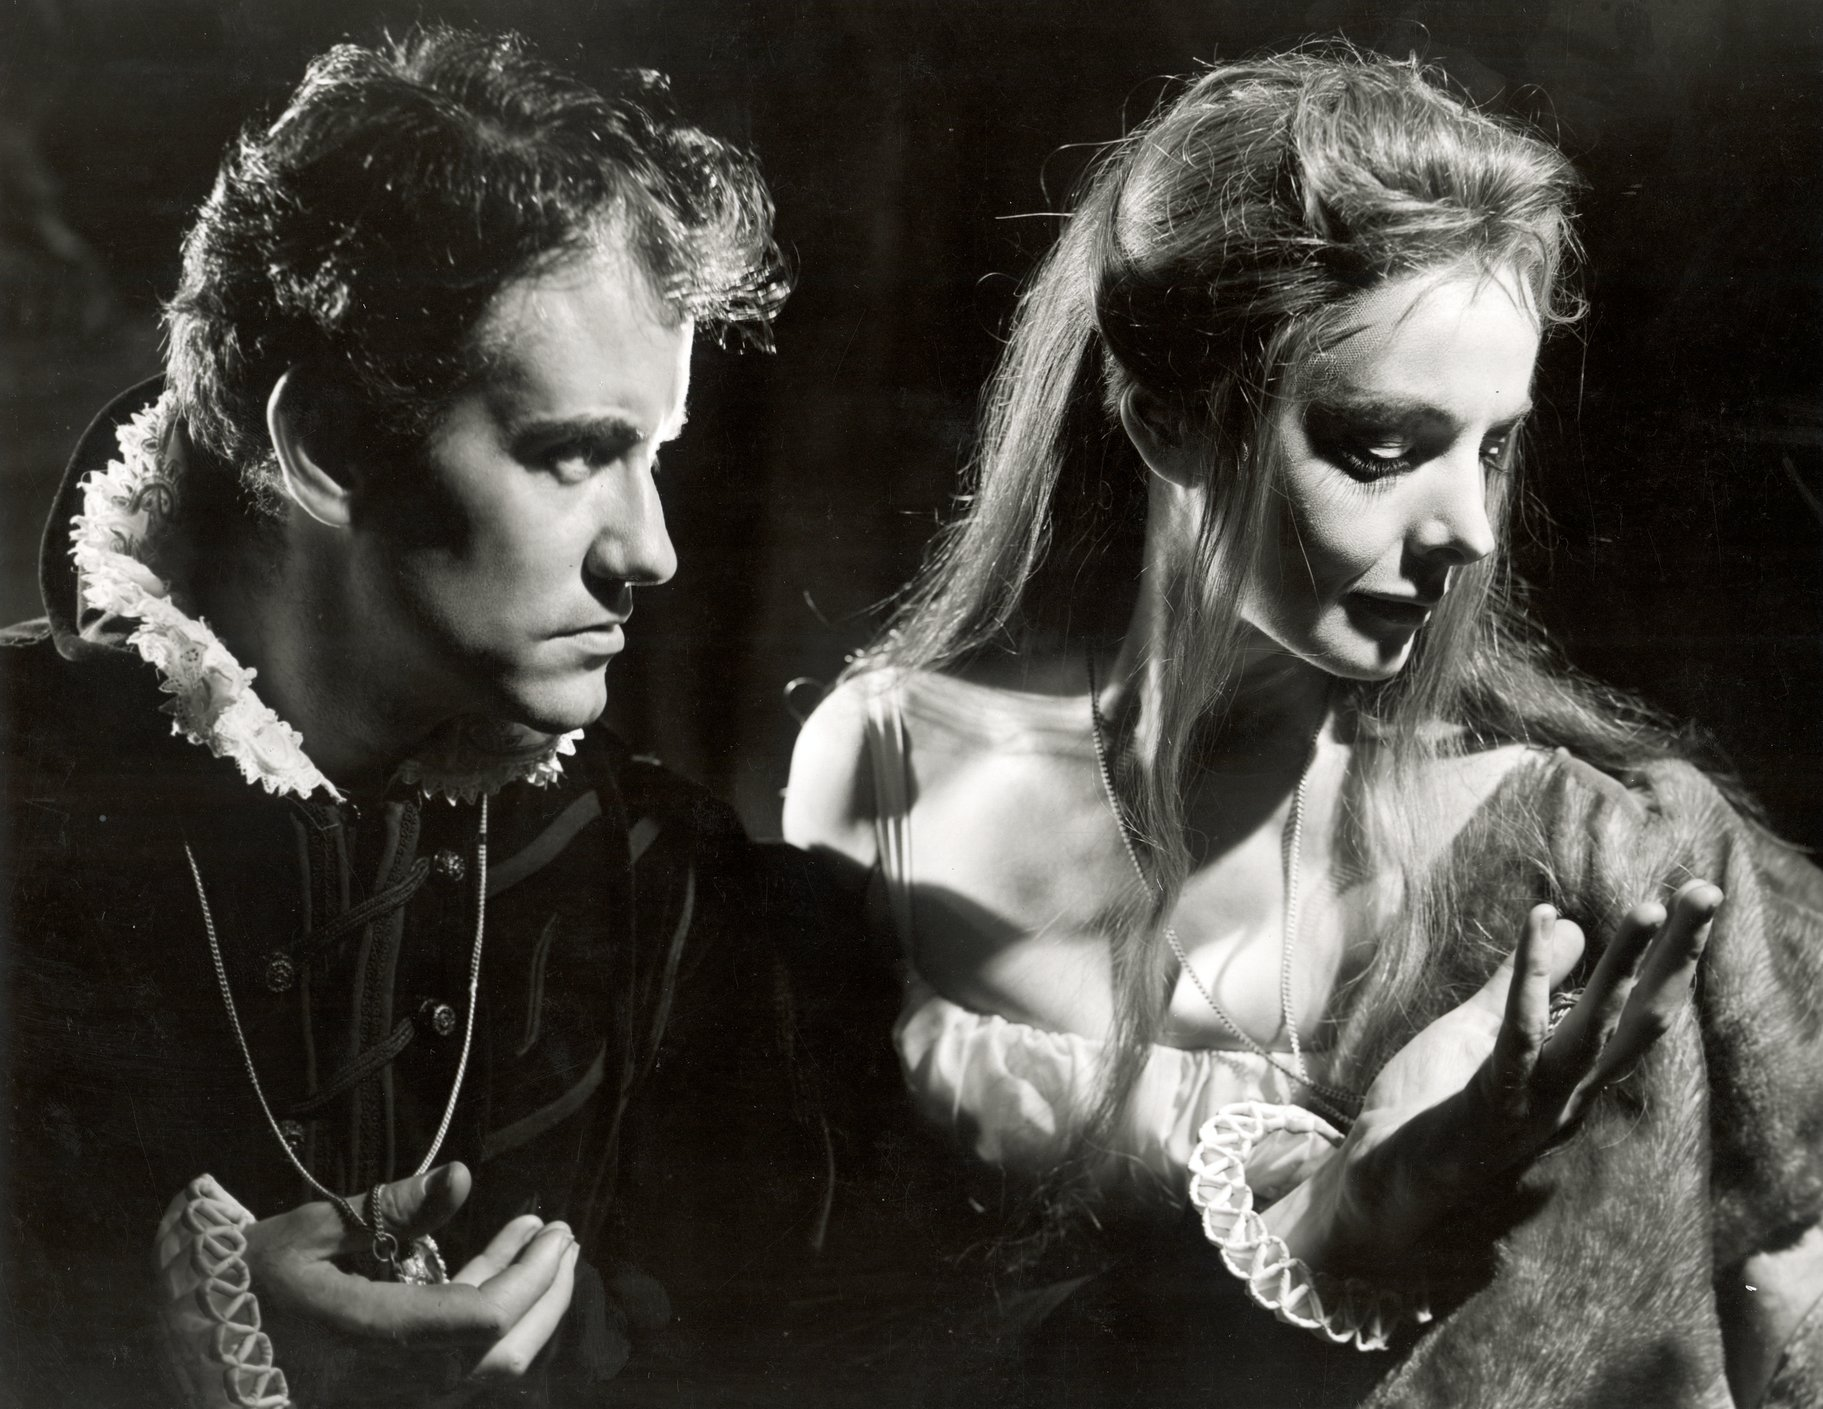 Hamlet and Gertrude in the 1961 production of Hamlet.